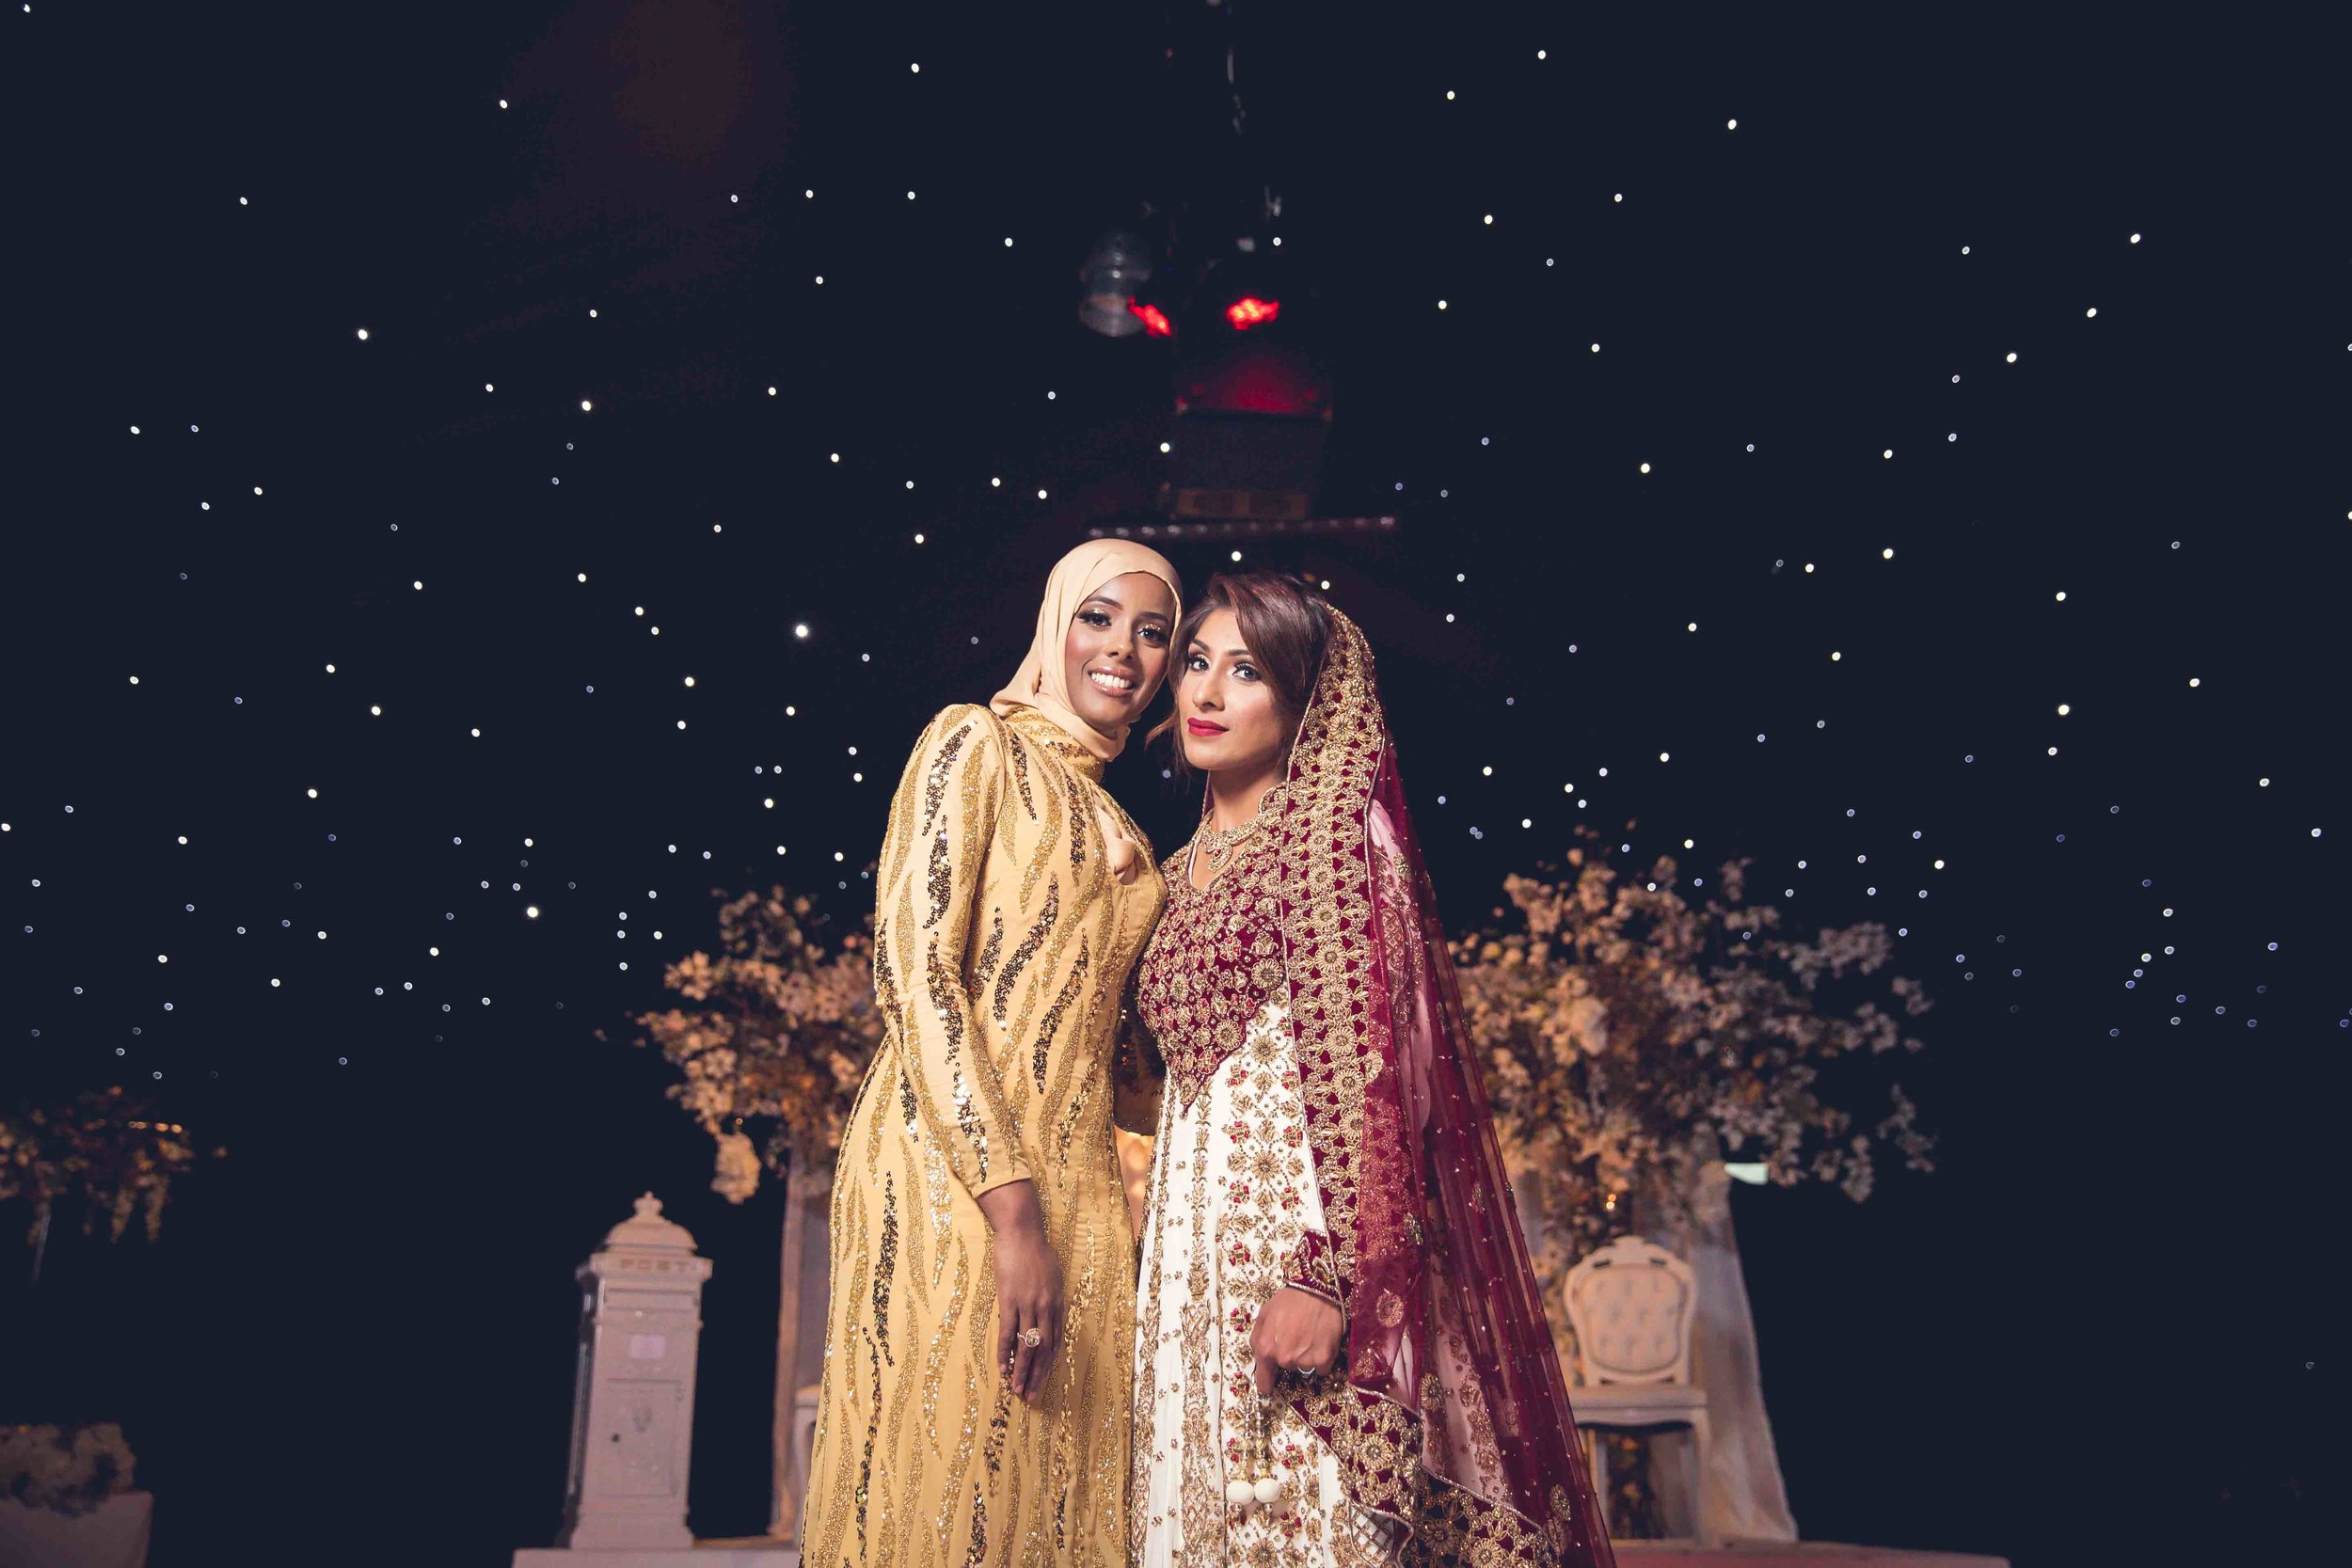 Asian Wedding Photographer Opu Sultan Photography Lyme Park Scotland Edinburgh Glasgow London Manchester Liverpool Birmingham Wedding Photos prewed shoot Azman & Saira Blog-157.jpg